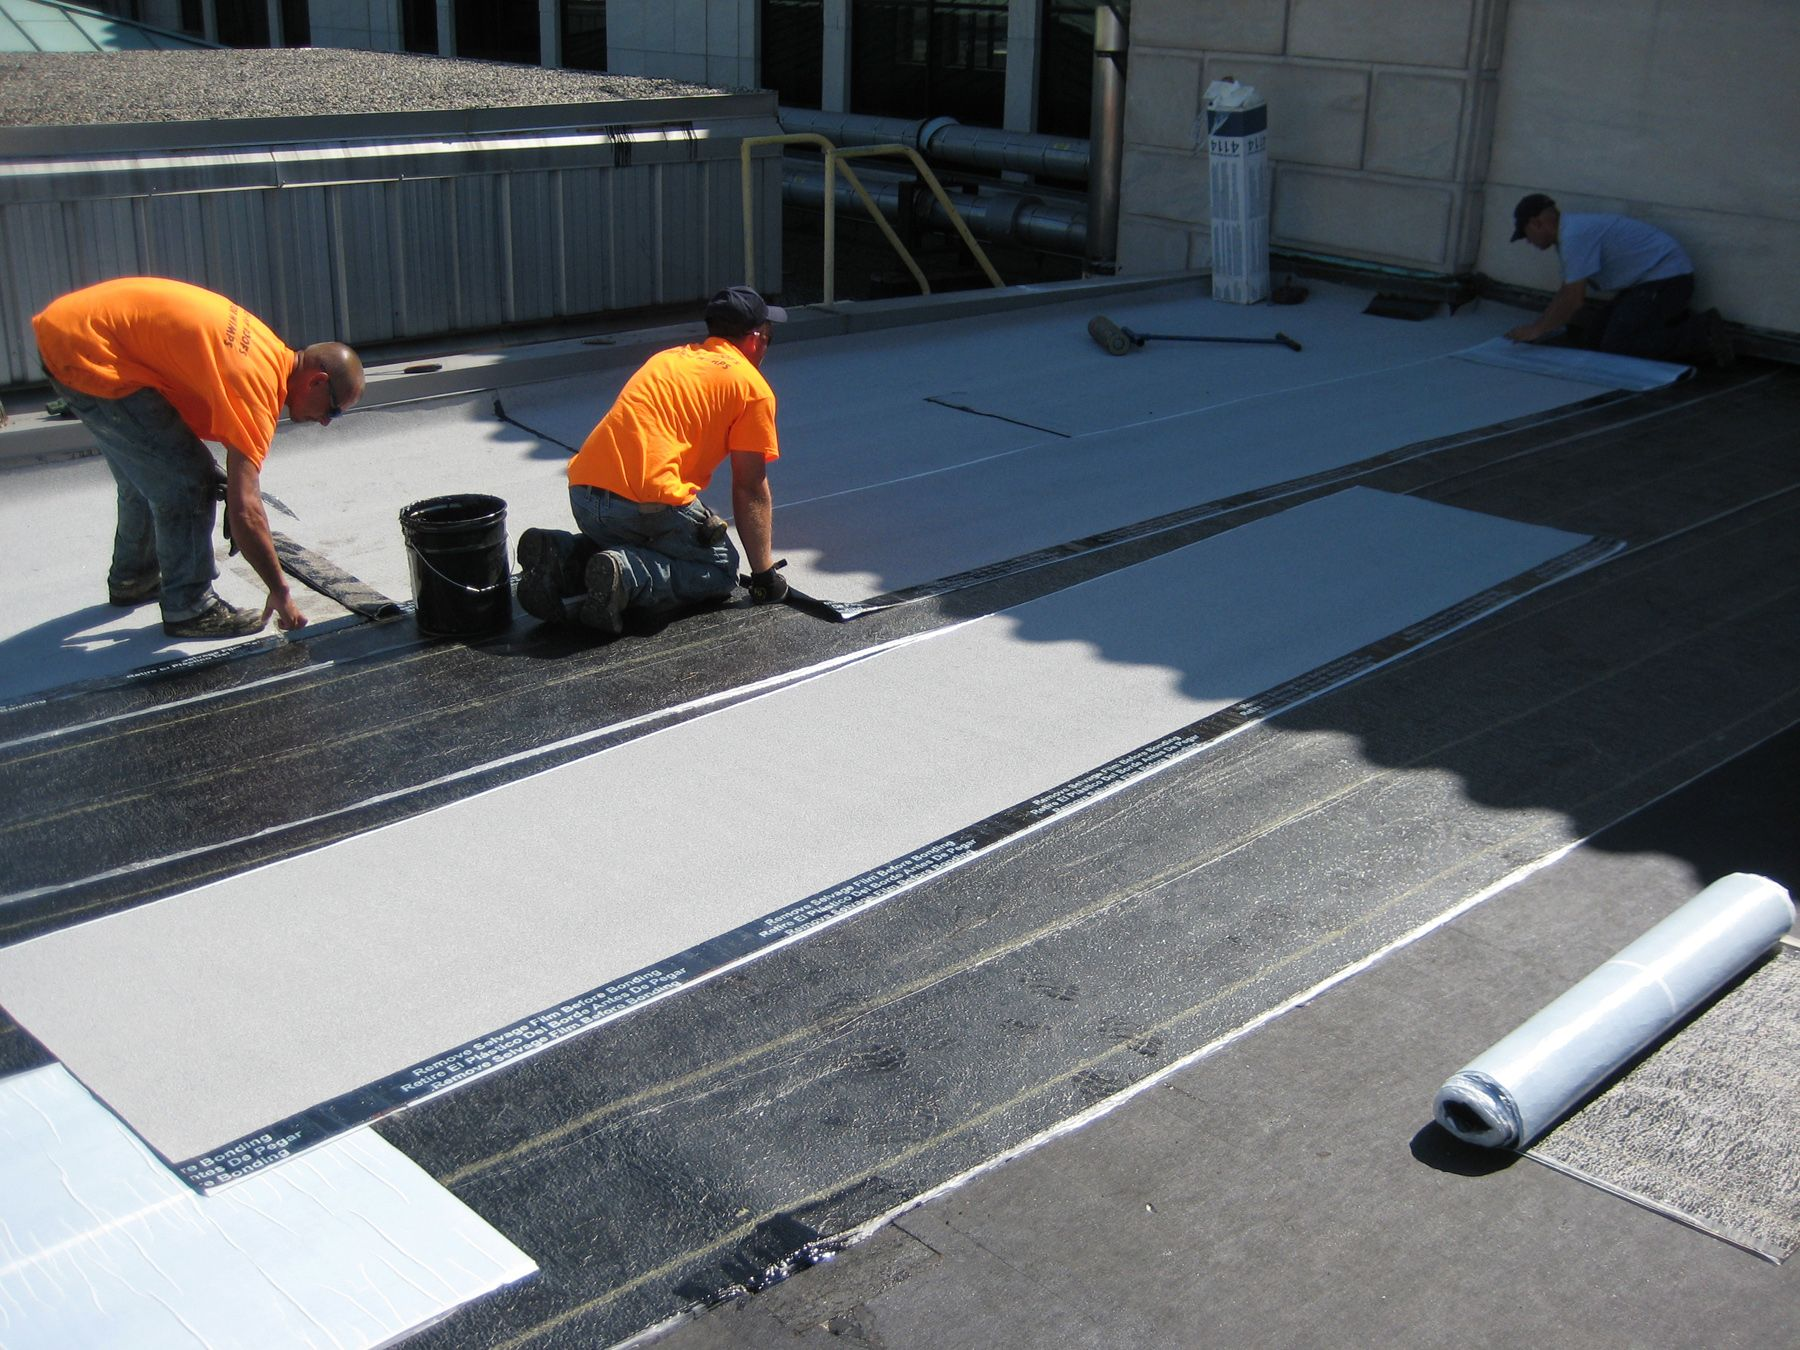 Built Up Roofing System Roofing Systems Flat Roof Repair Modified Bitumen Roofing